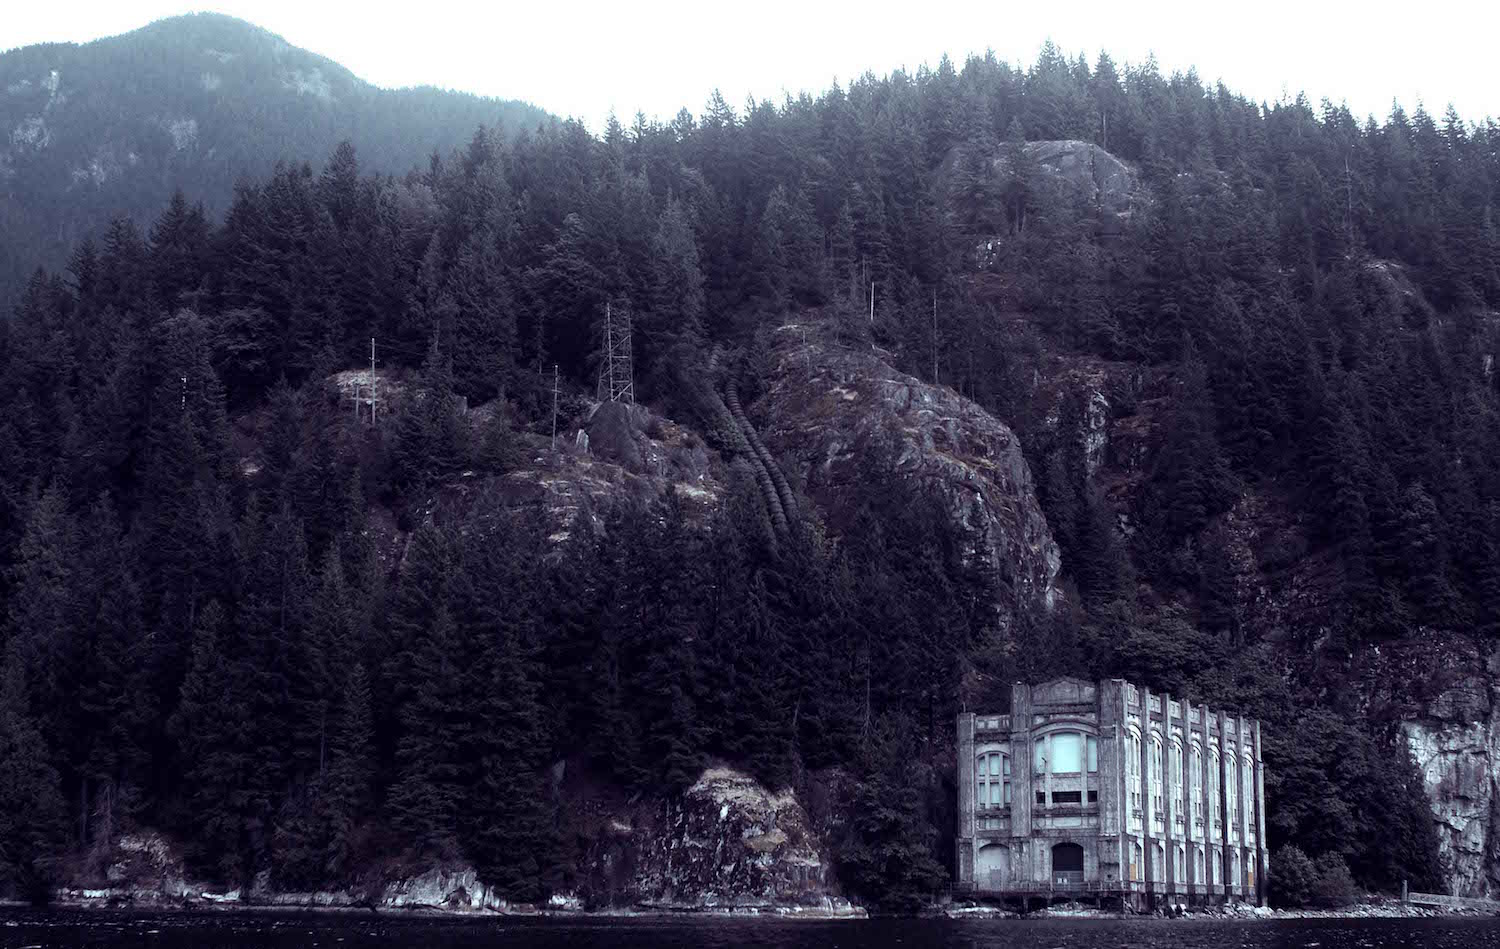 The Power Plant / Indian Arm, British Columbia